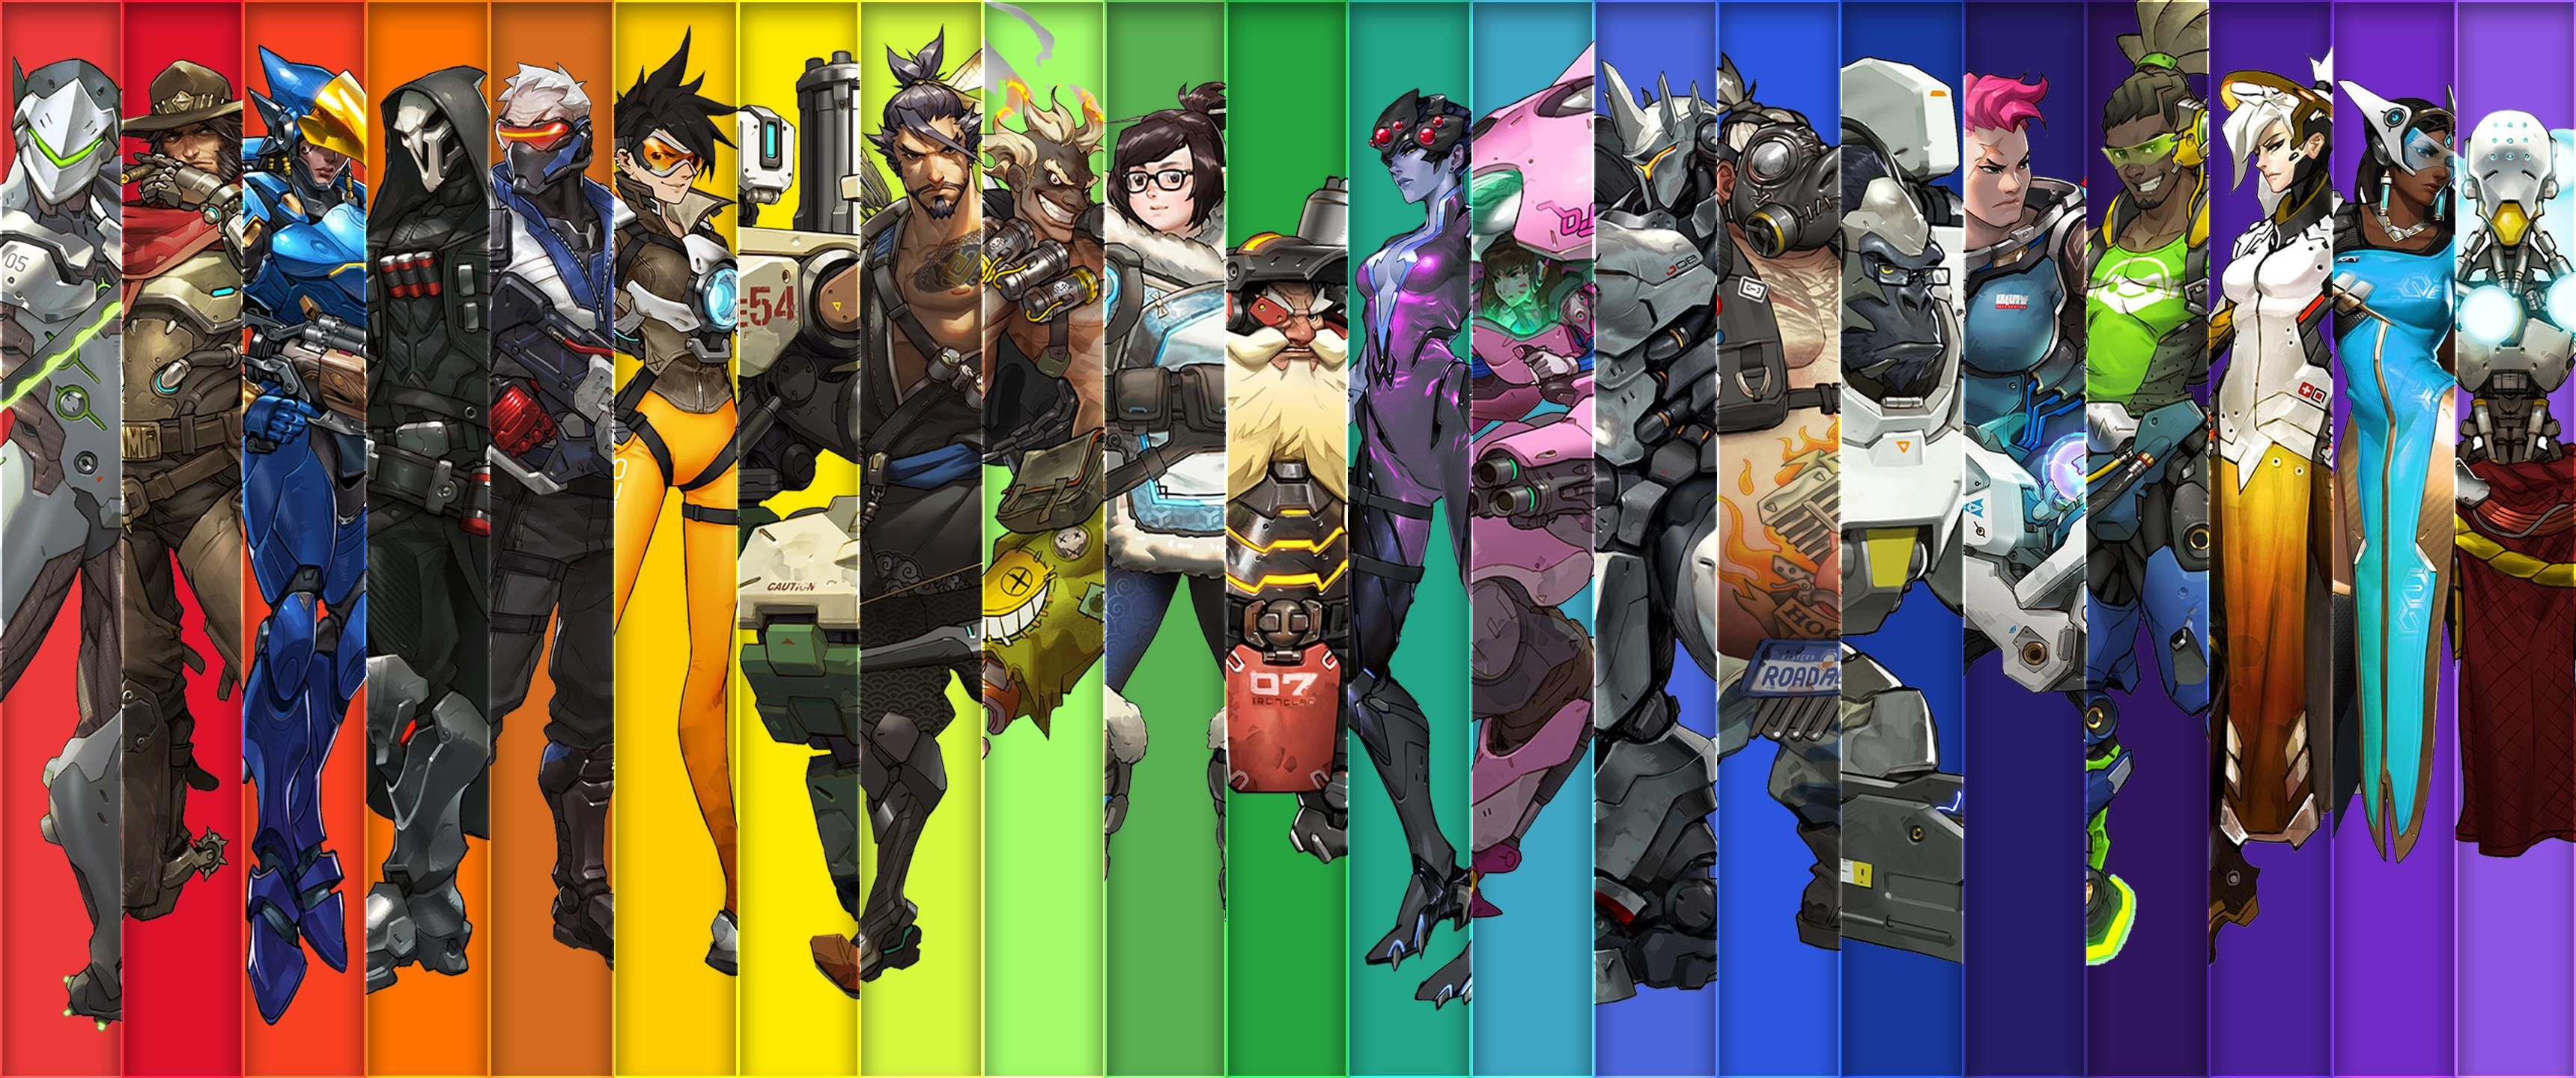 An Overwatch Background I've been using  [3440x1440] | 饿 in